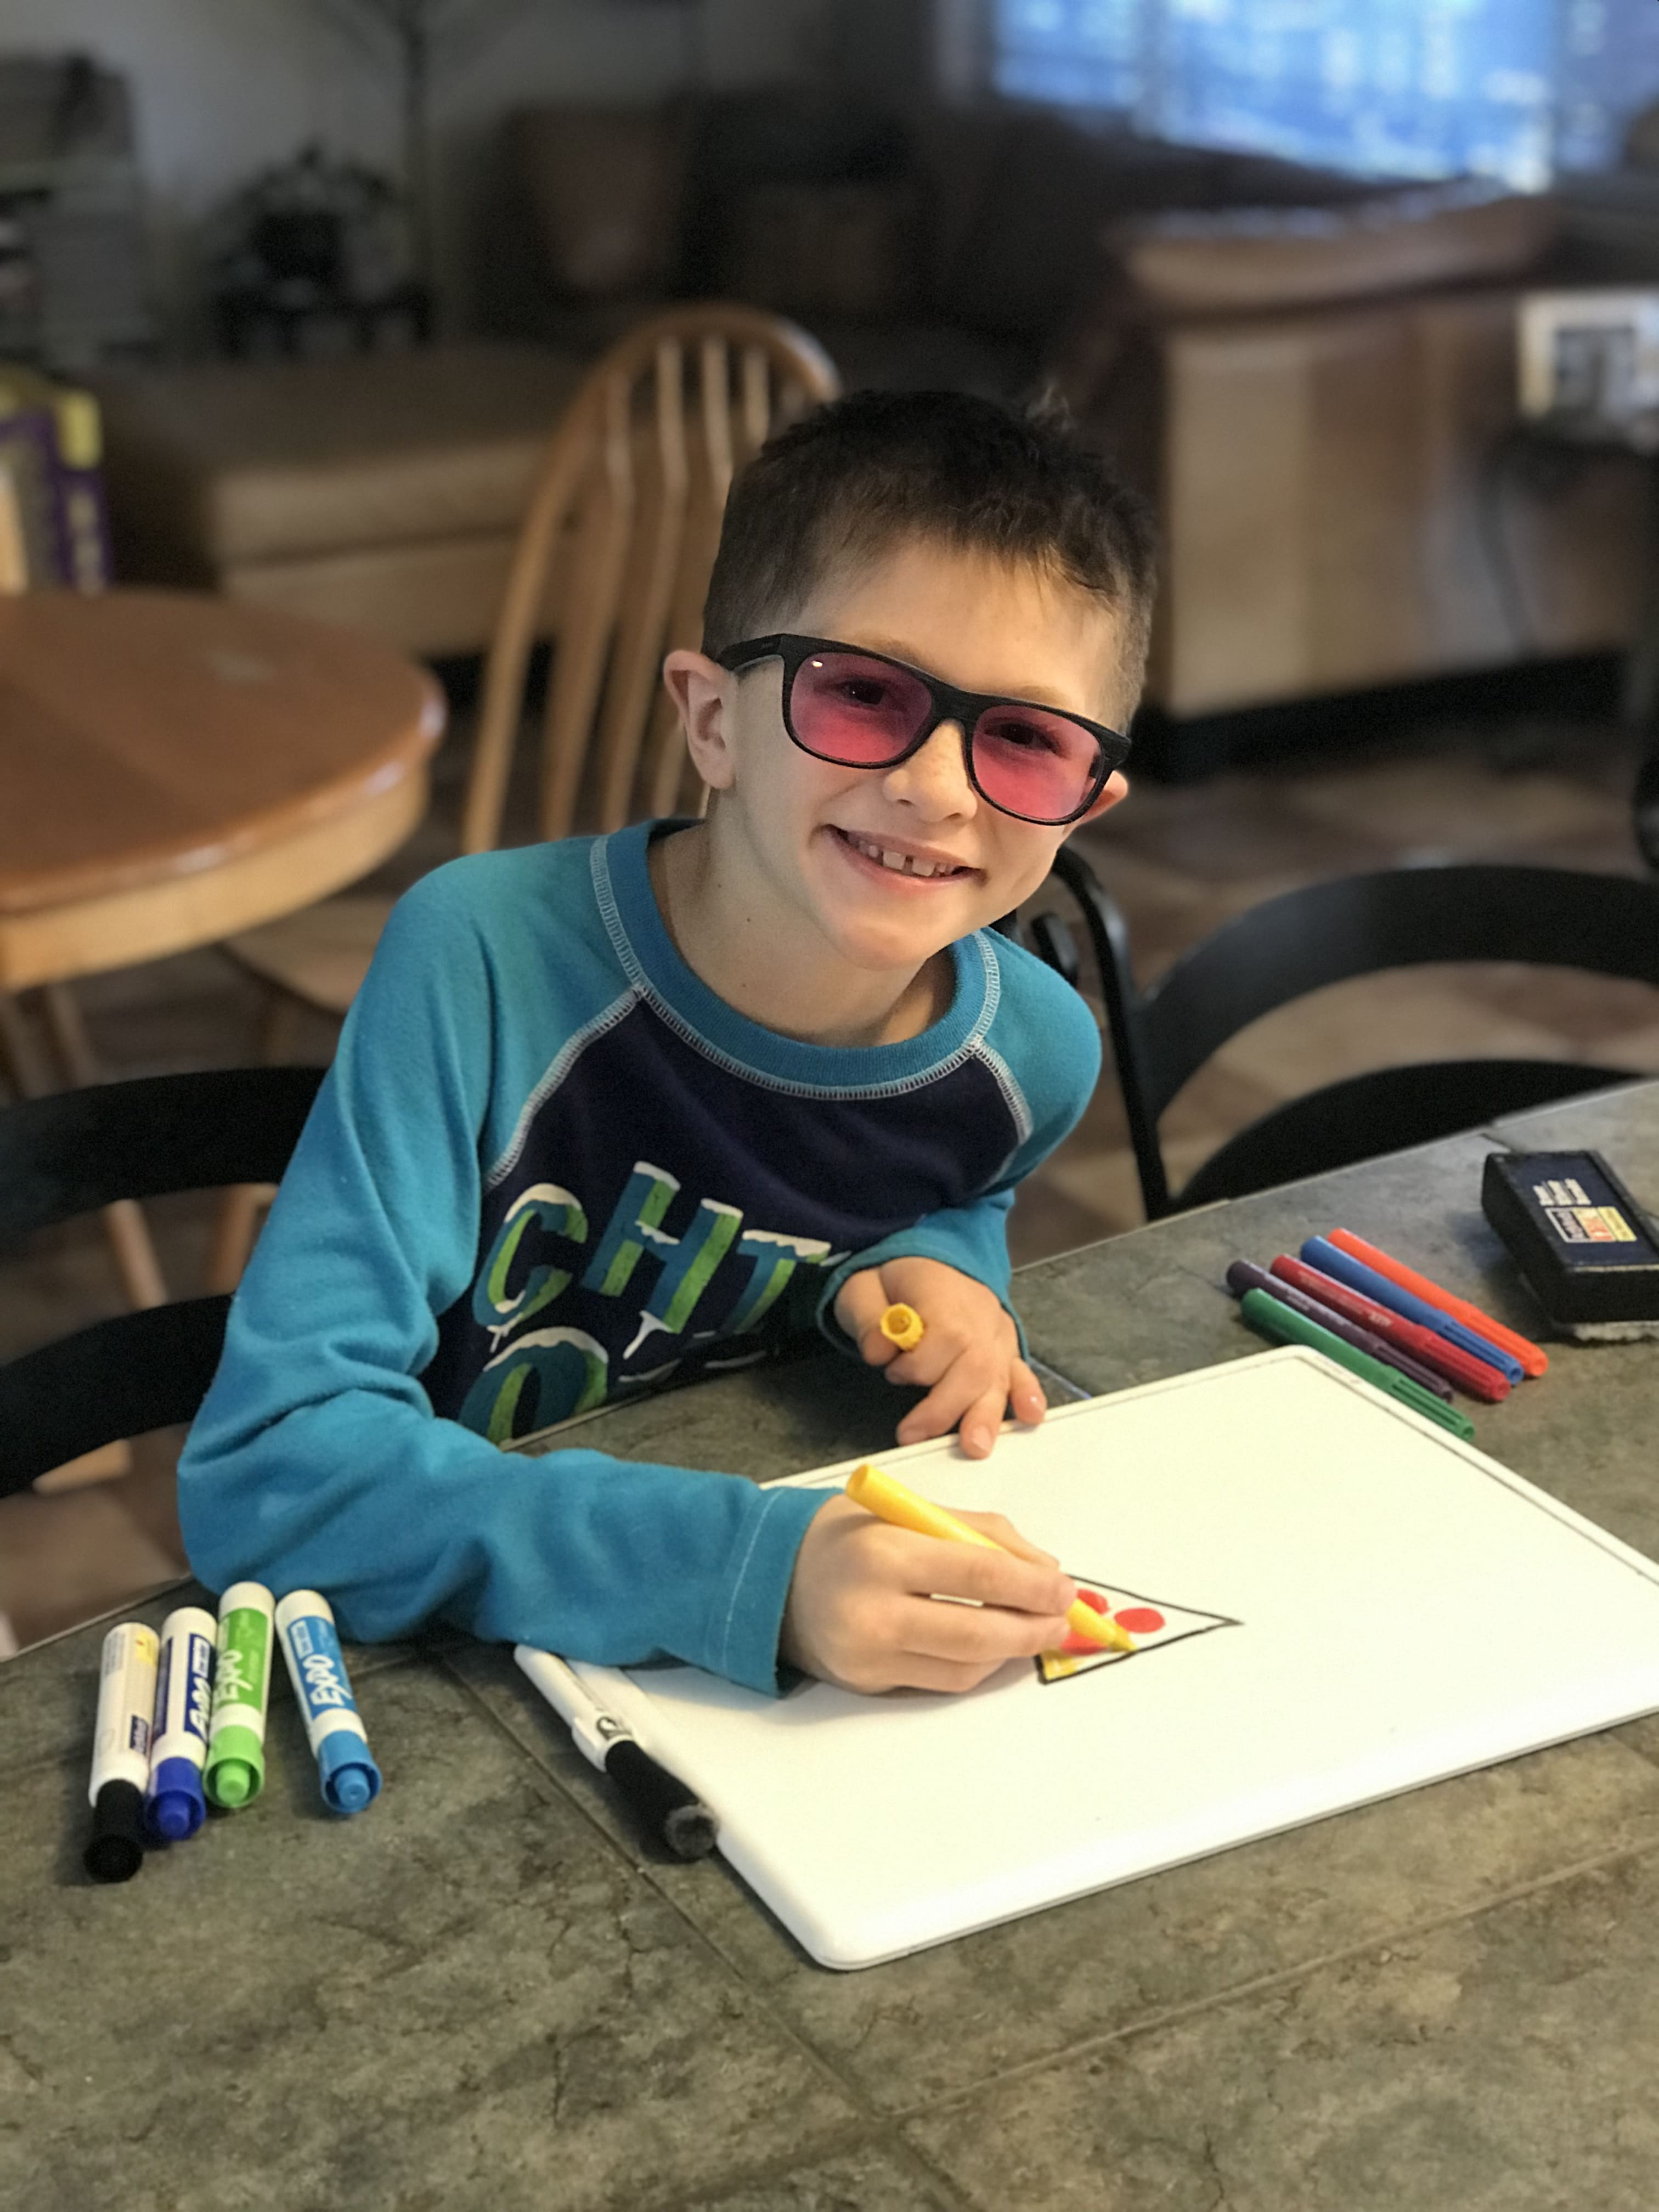 young color blind boy smiling with glasses